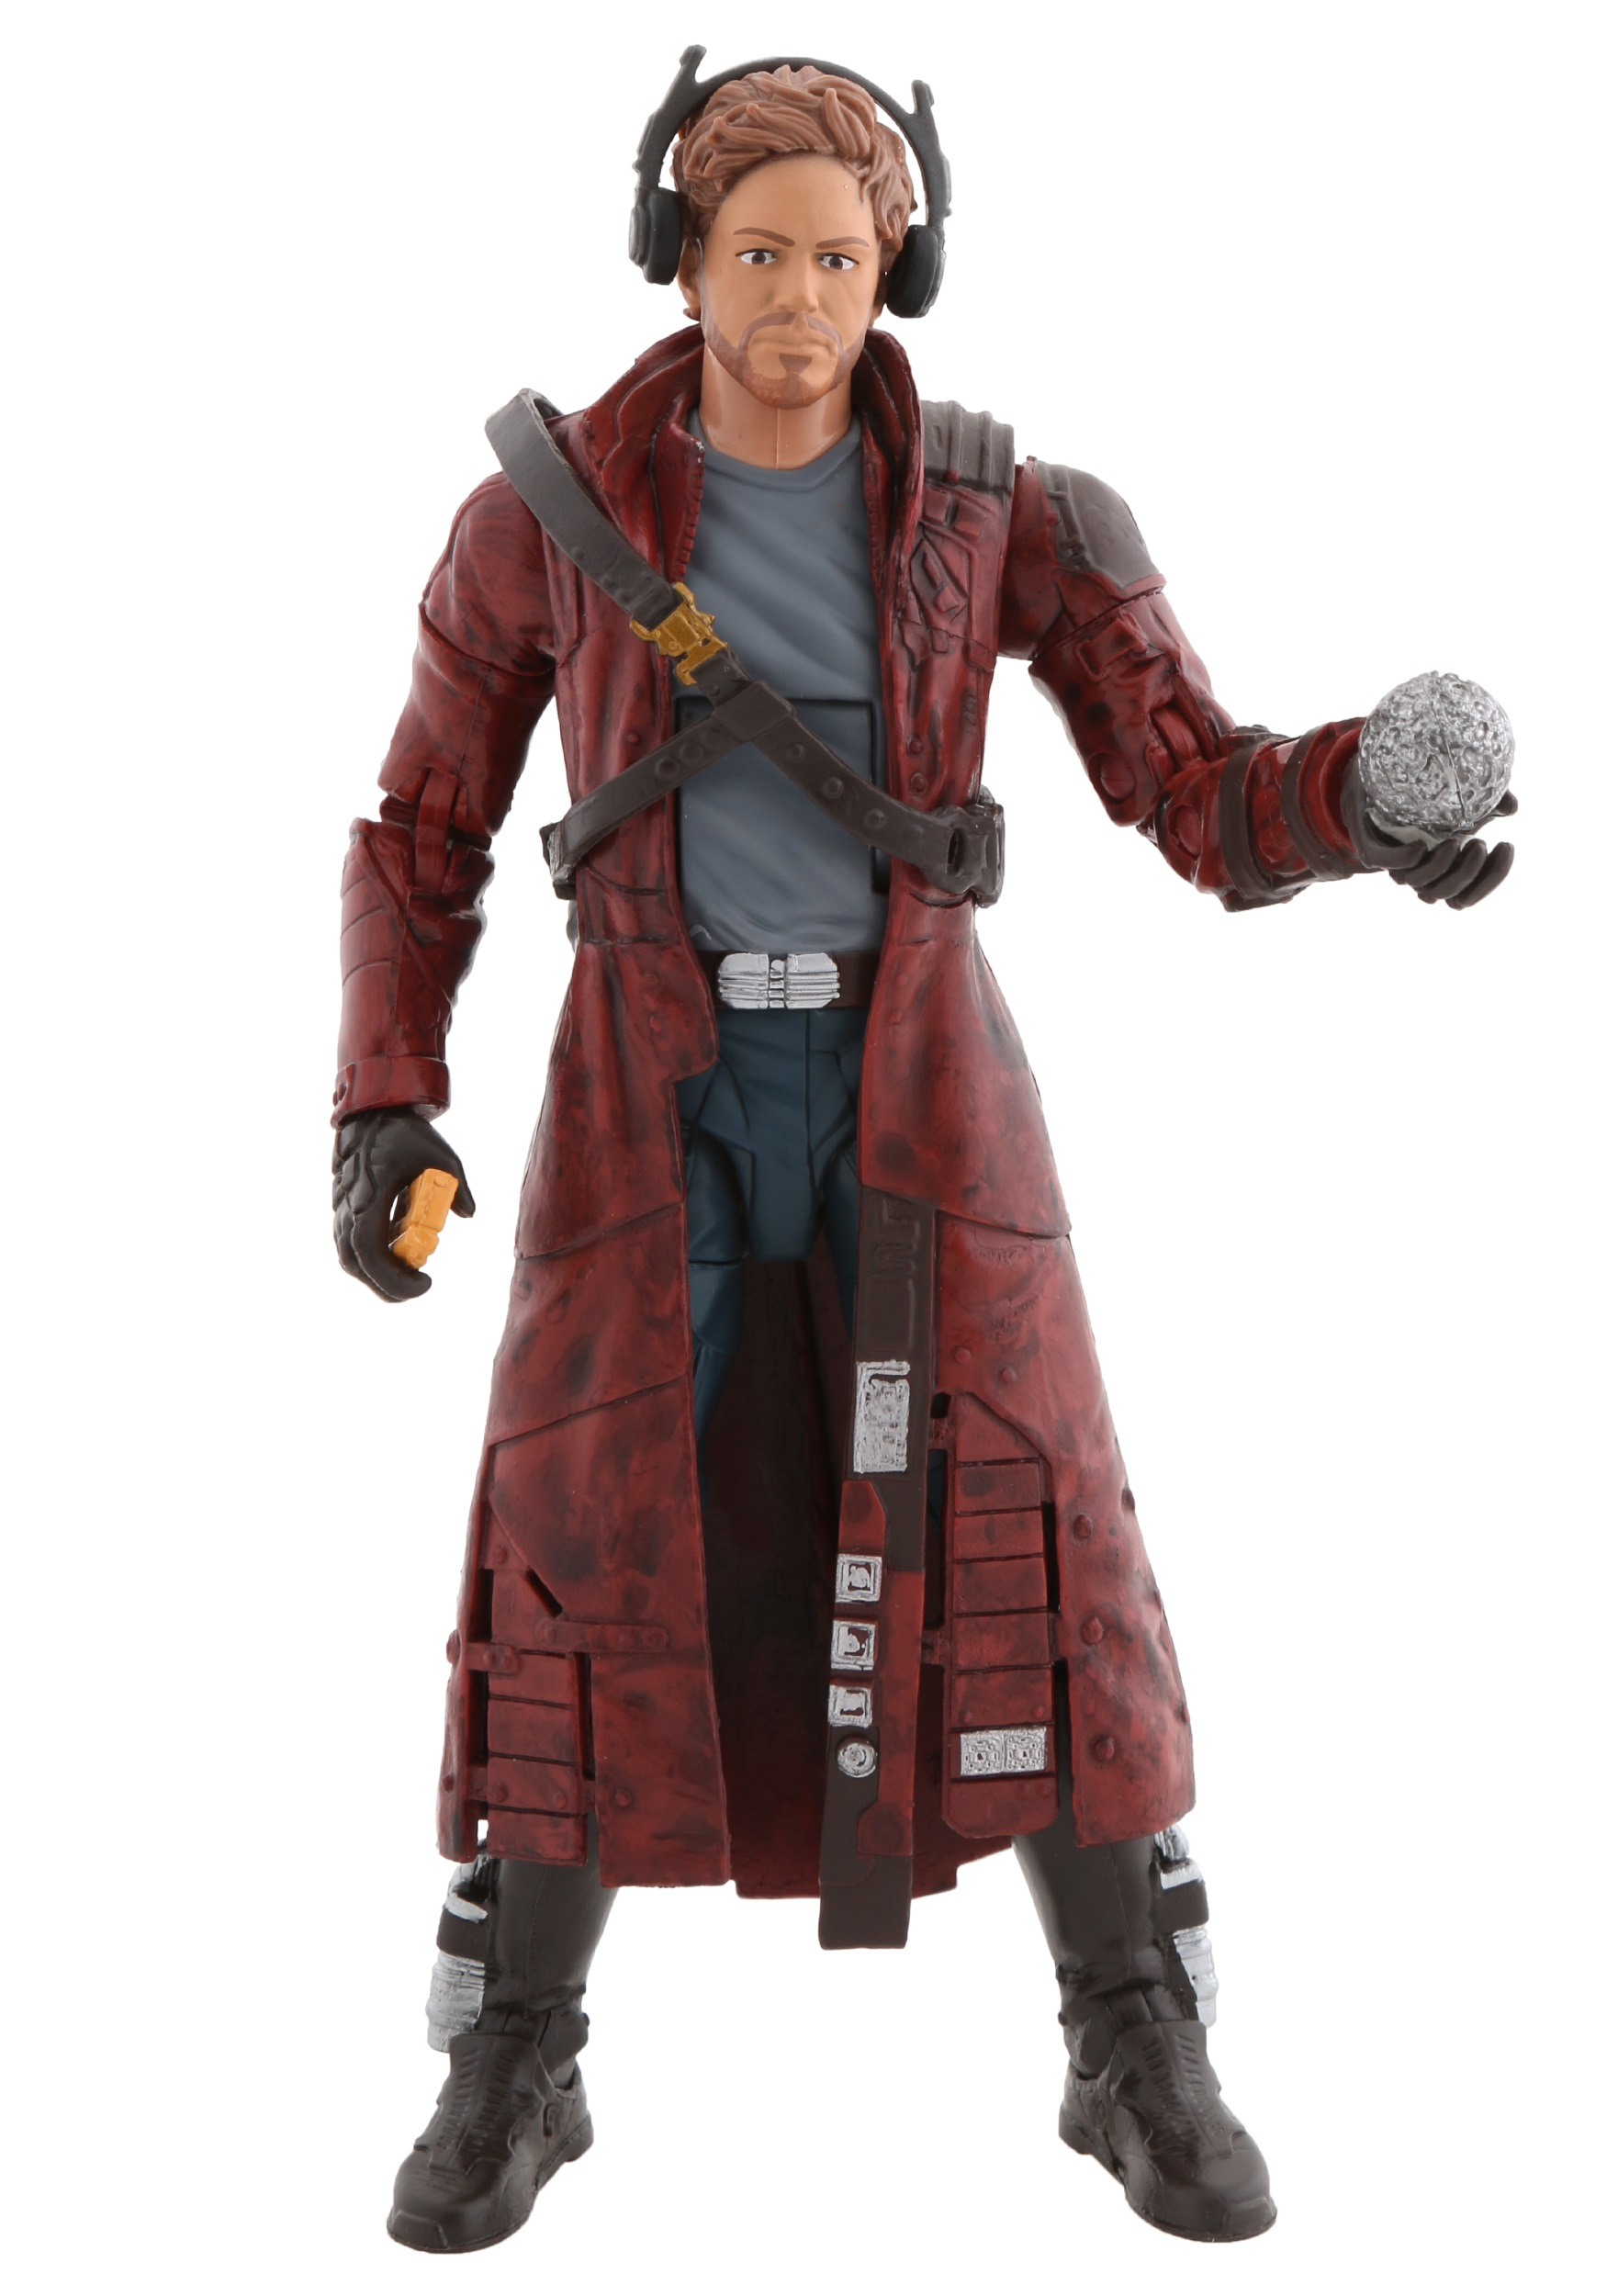 Girl Paw Patrol Wallpaper Guardians Of The Galaxy Legends Star Lord Figure